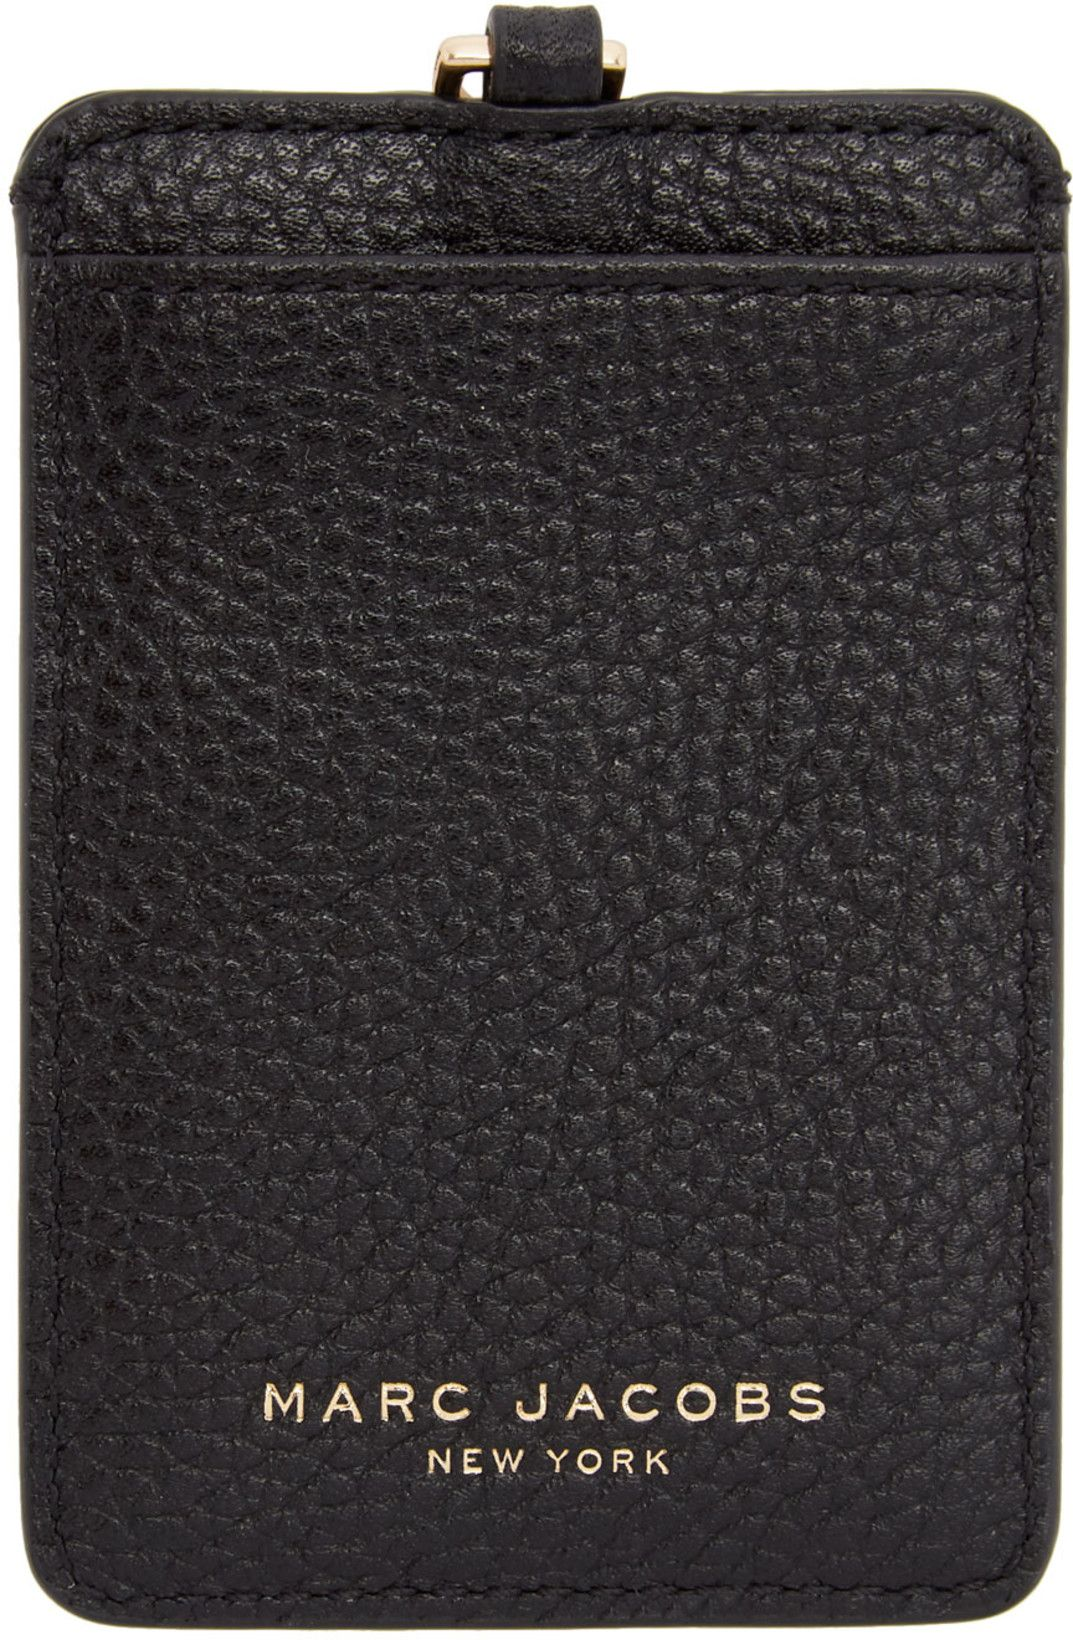 finest selection 35a9b 4659f Marc Jacobs - Black Commuter Pass Card Holder   accesories   Card ...